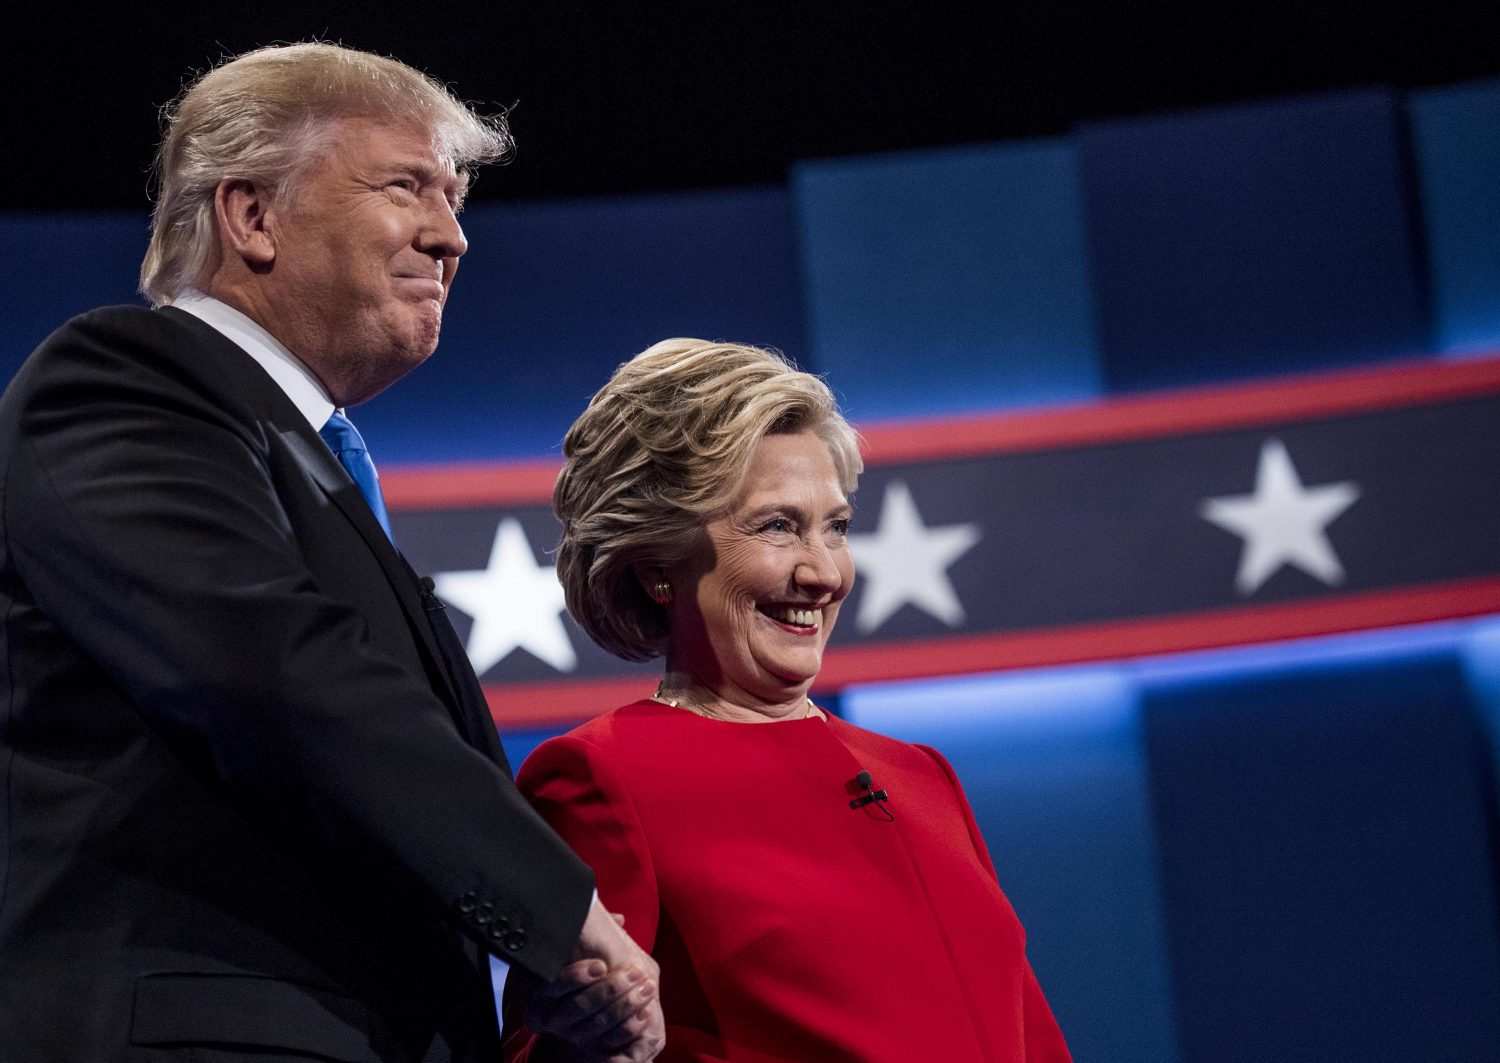 Republican presidential nominee Donald Trump and Democratic presidential nominee Hillary Clinton get ready to debate in Hempstead, New York on Monday. (Melina Mara/ Washington Post)